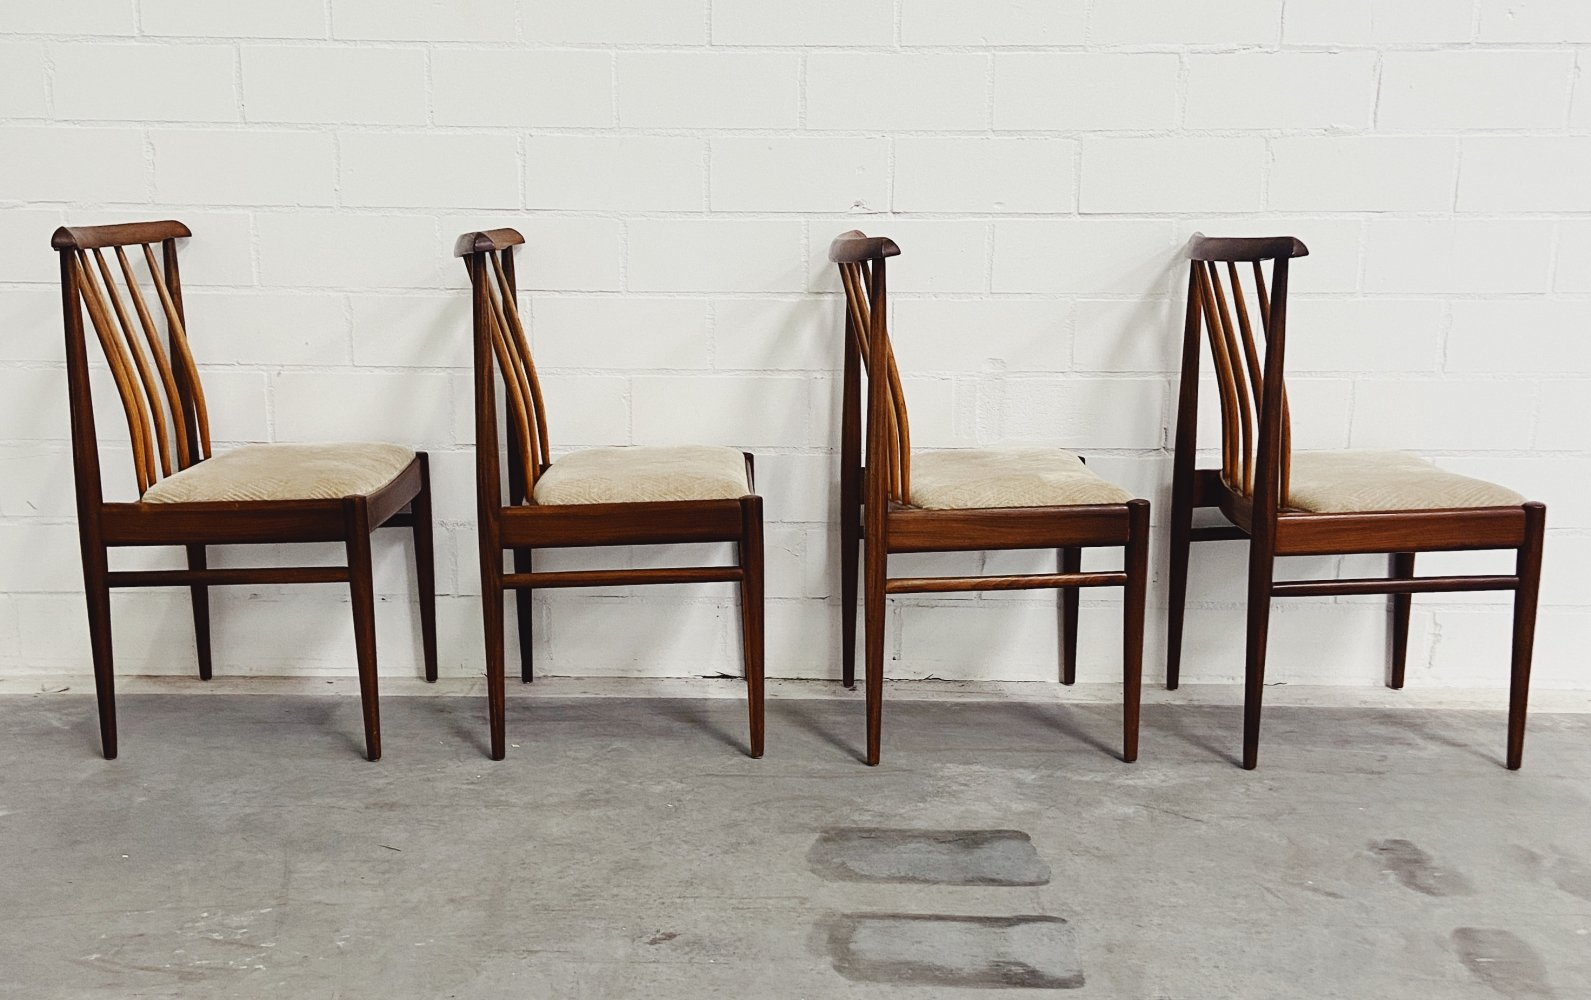 Set of 4 Vintage Scandinavian Dining Chairs, 1960s